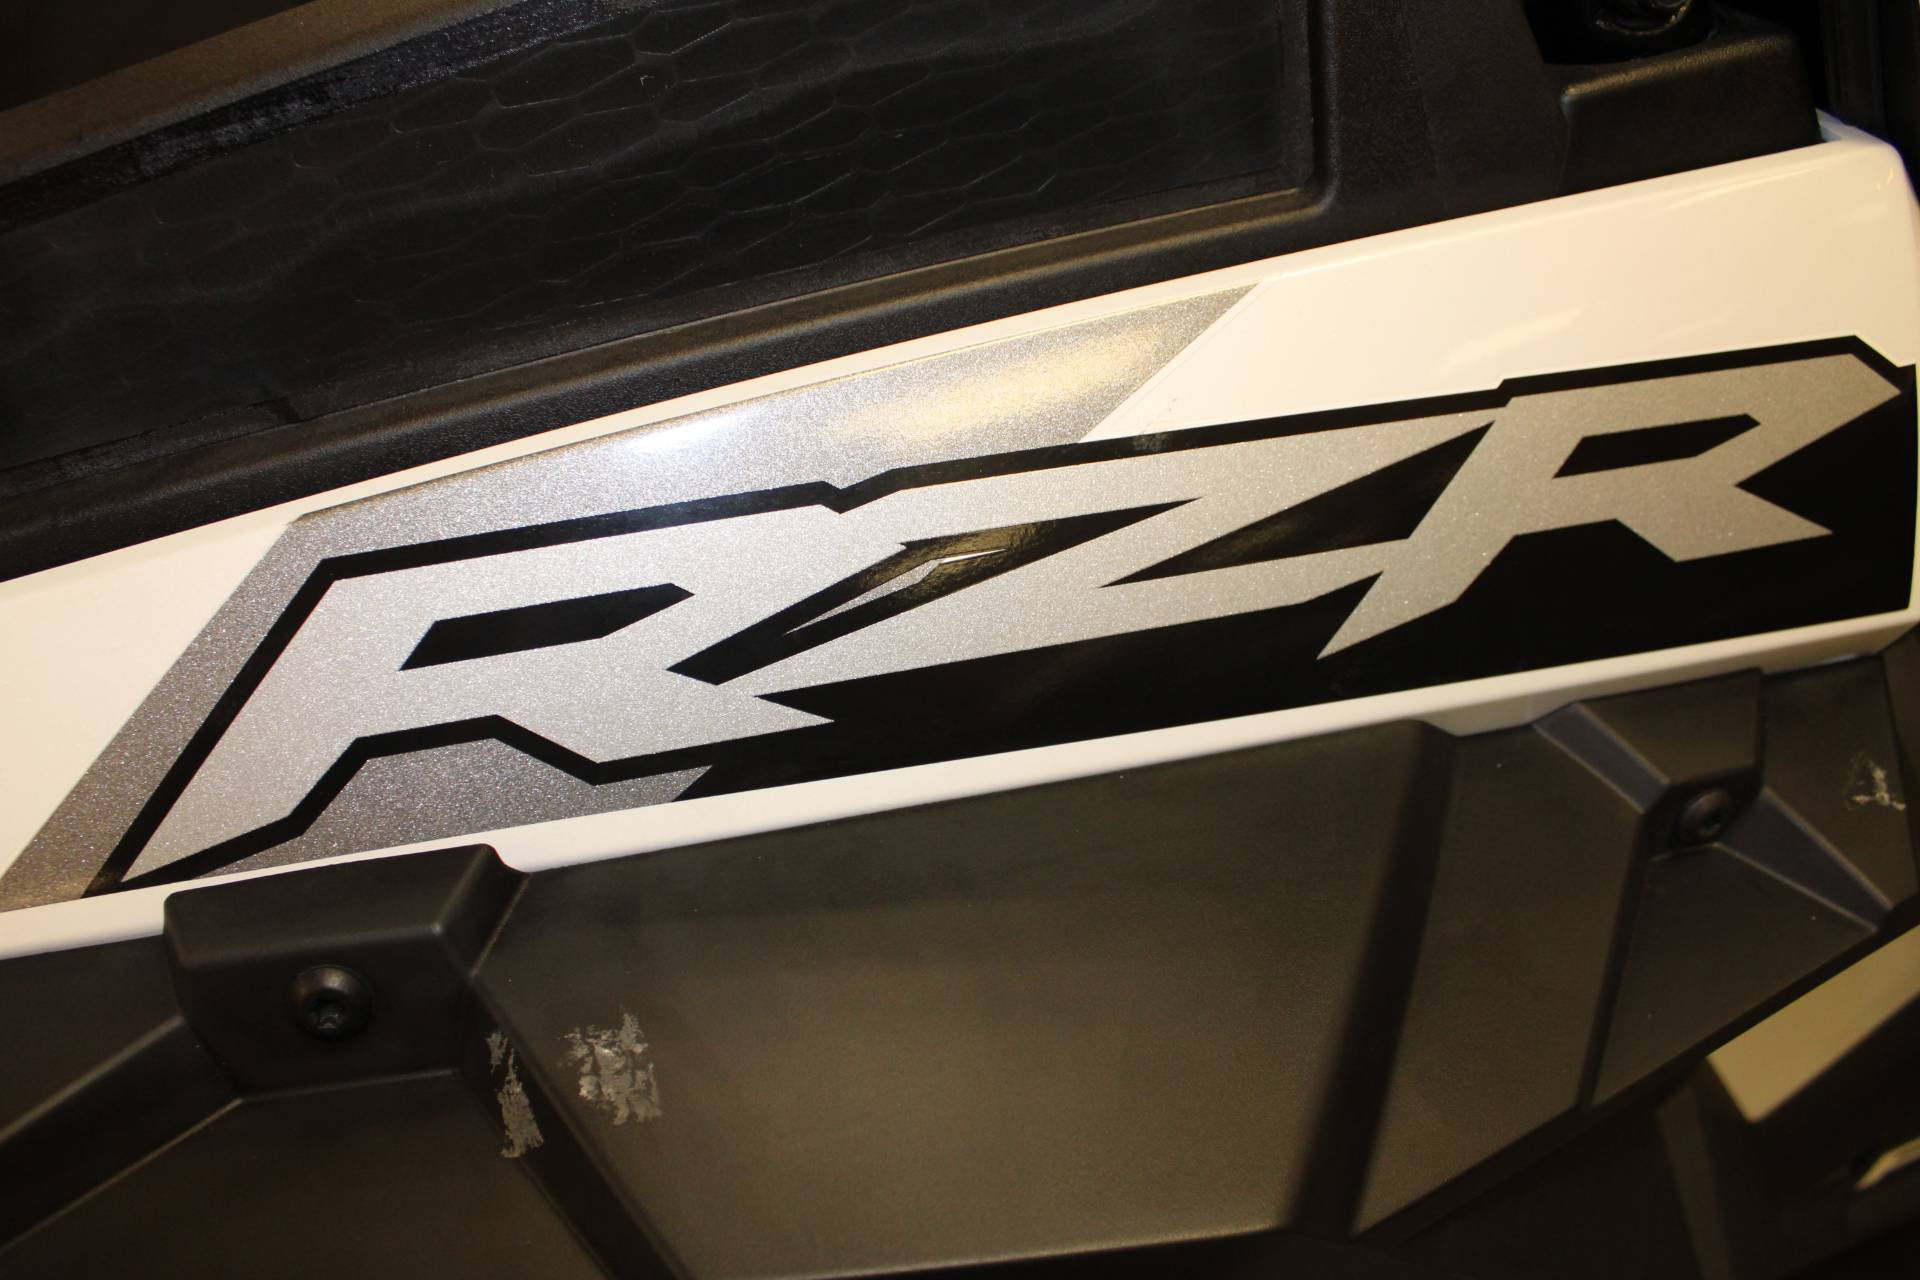 2019 Polaris RZR XP 4 1000 EPS in Chanute, Kansas - Photo 10